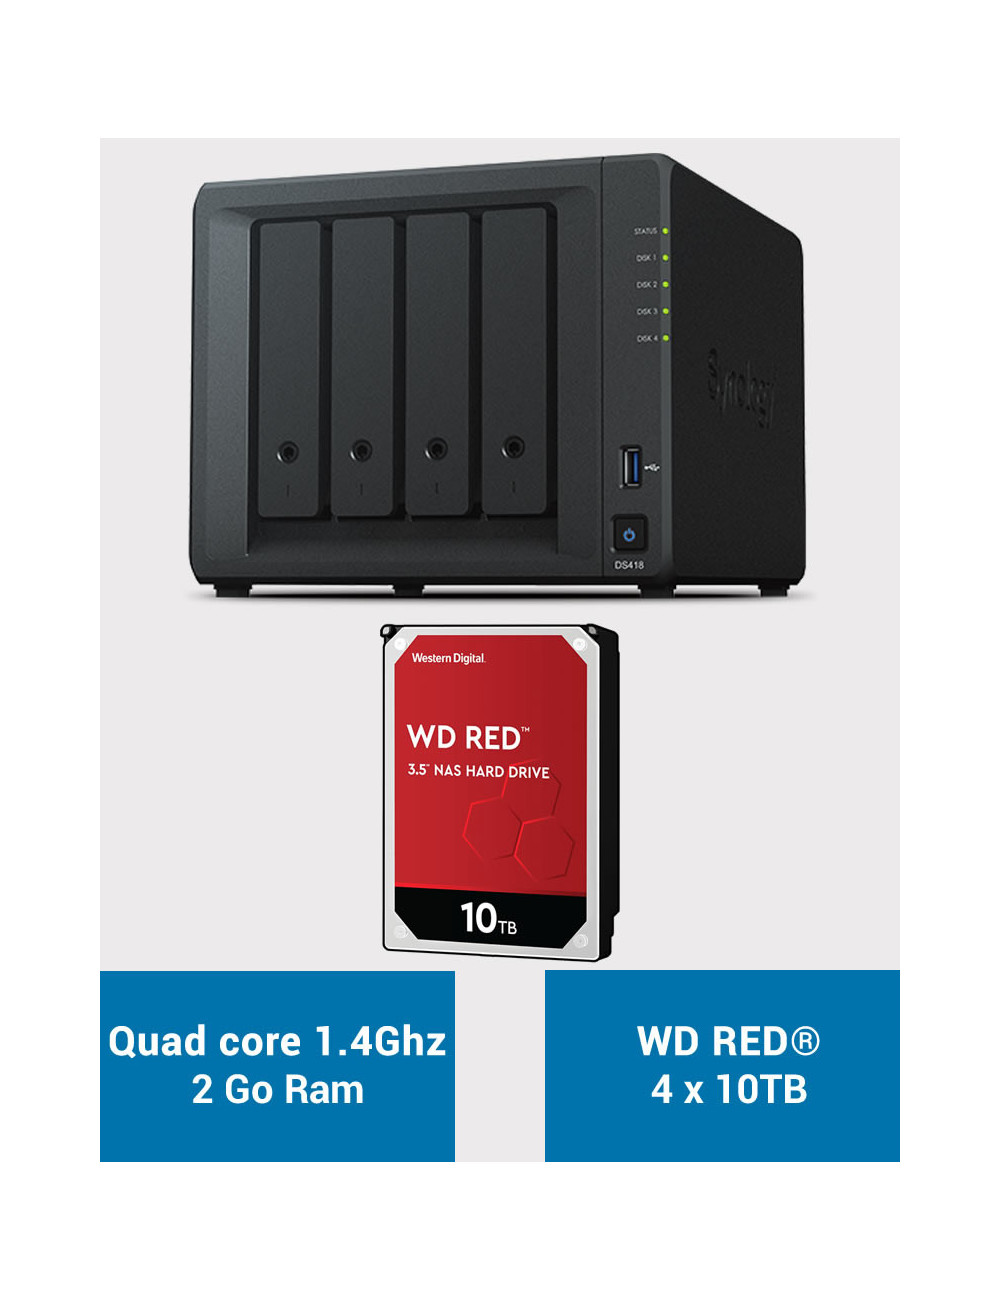 Synology DS418 NAS Server WD RED 40TB (4x10TB)